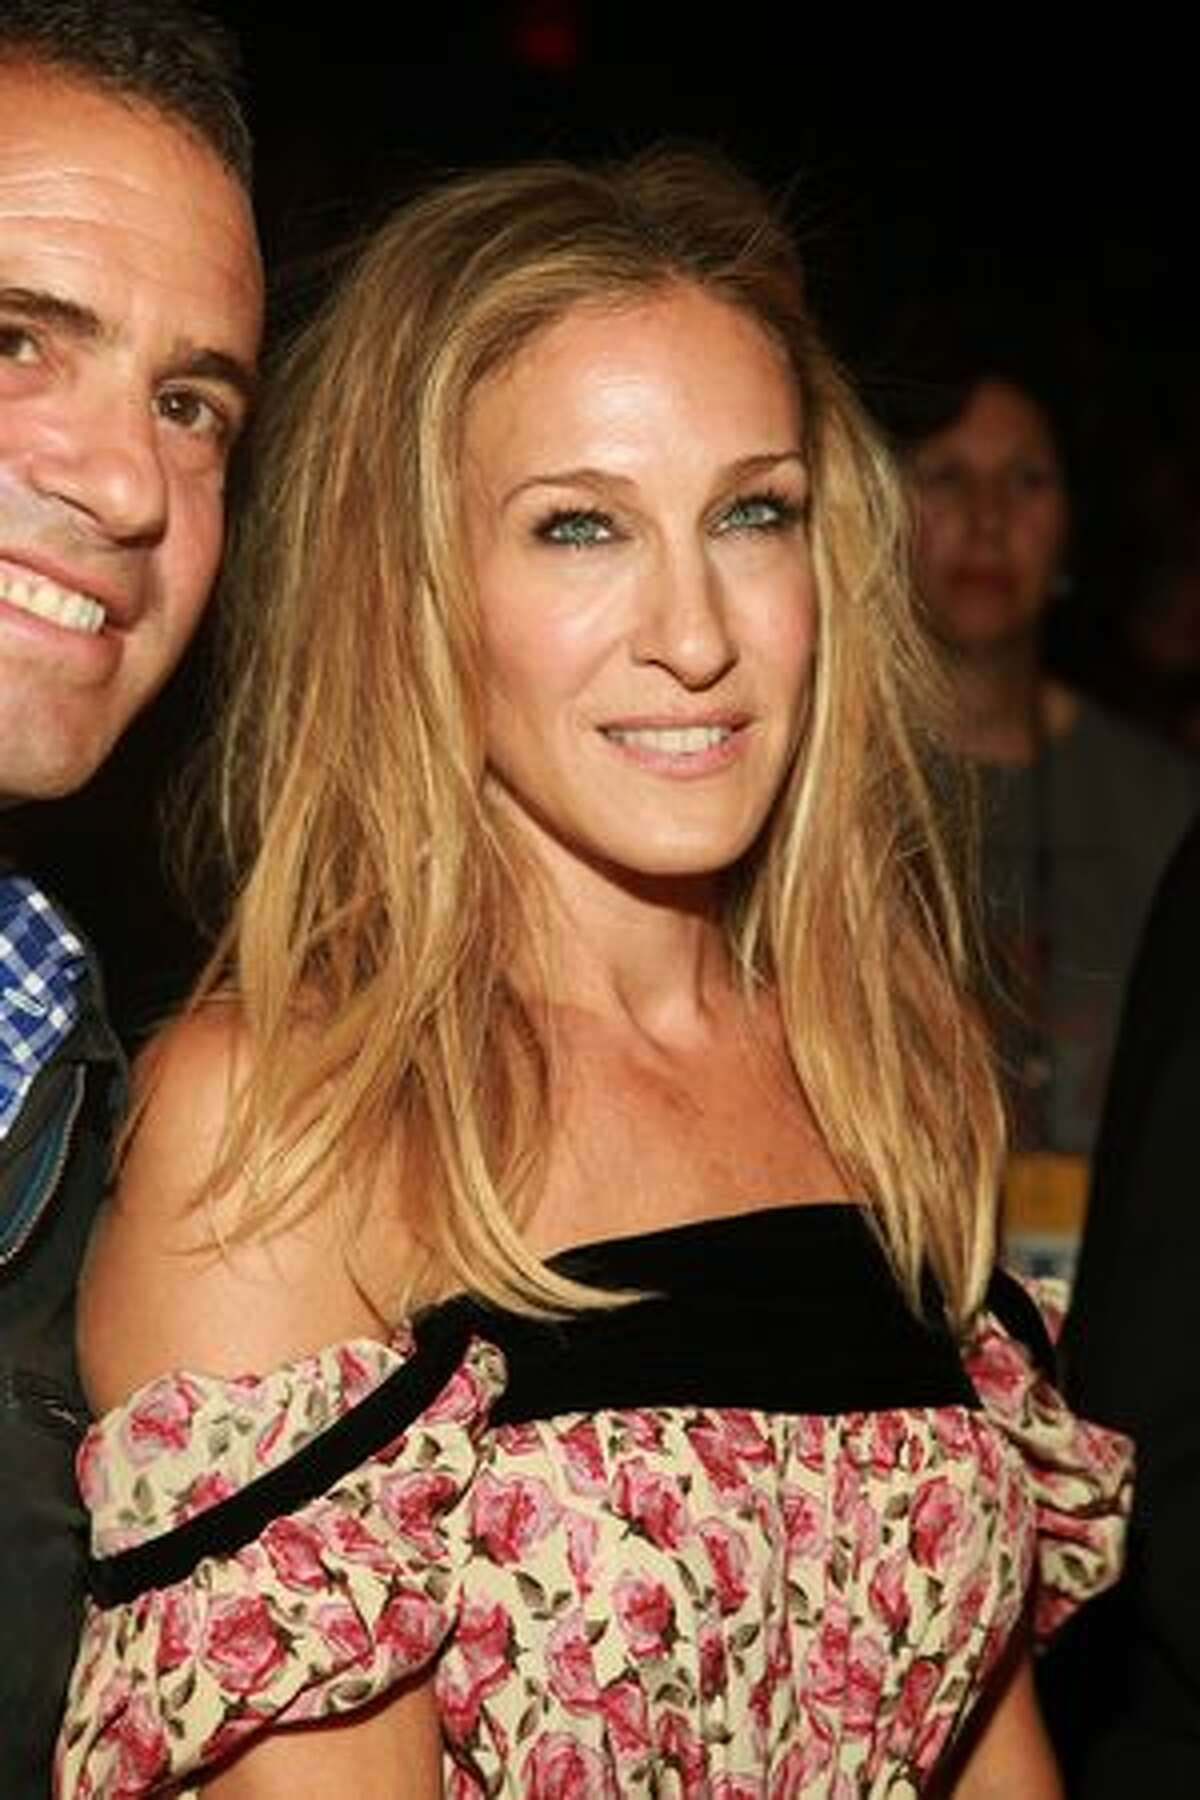 Andy Cohen and Sarah Jessica Parker attend the Diane von Furstenberg Spring 2011 fashion show during Mercedes-Benz Fashion Week at The Theater in New York City.